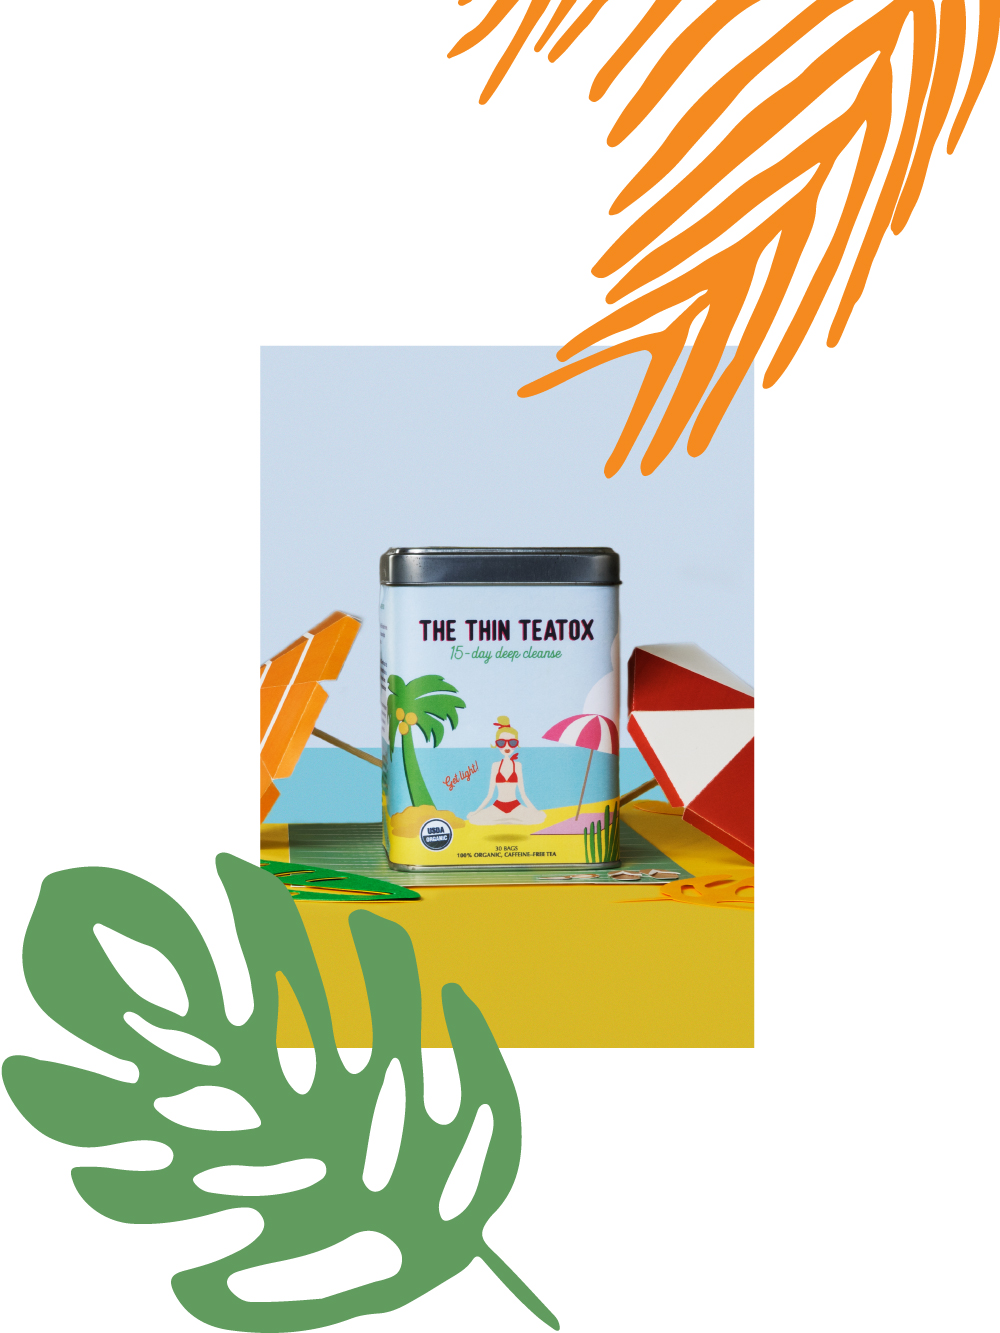 It all started when - The owners of The Thin Tea came to us to design the packaging for their first product, The Thin Teatox. It is an organic tea-based detox programme catering to a youthful female audience looking for a natural and healthy way to enhance the way they look and feel.Being a product in a pretty competitive space our client was looking for an eye-catching packaging that their young audience can relate to.The packaging had to lend itself well to social media, as well as hold its ground on the e-commerce shelf. The Thin Teatox had to stand out from what was already in the market, yet not look too different from the product type.